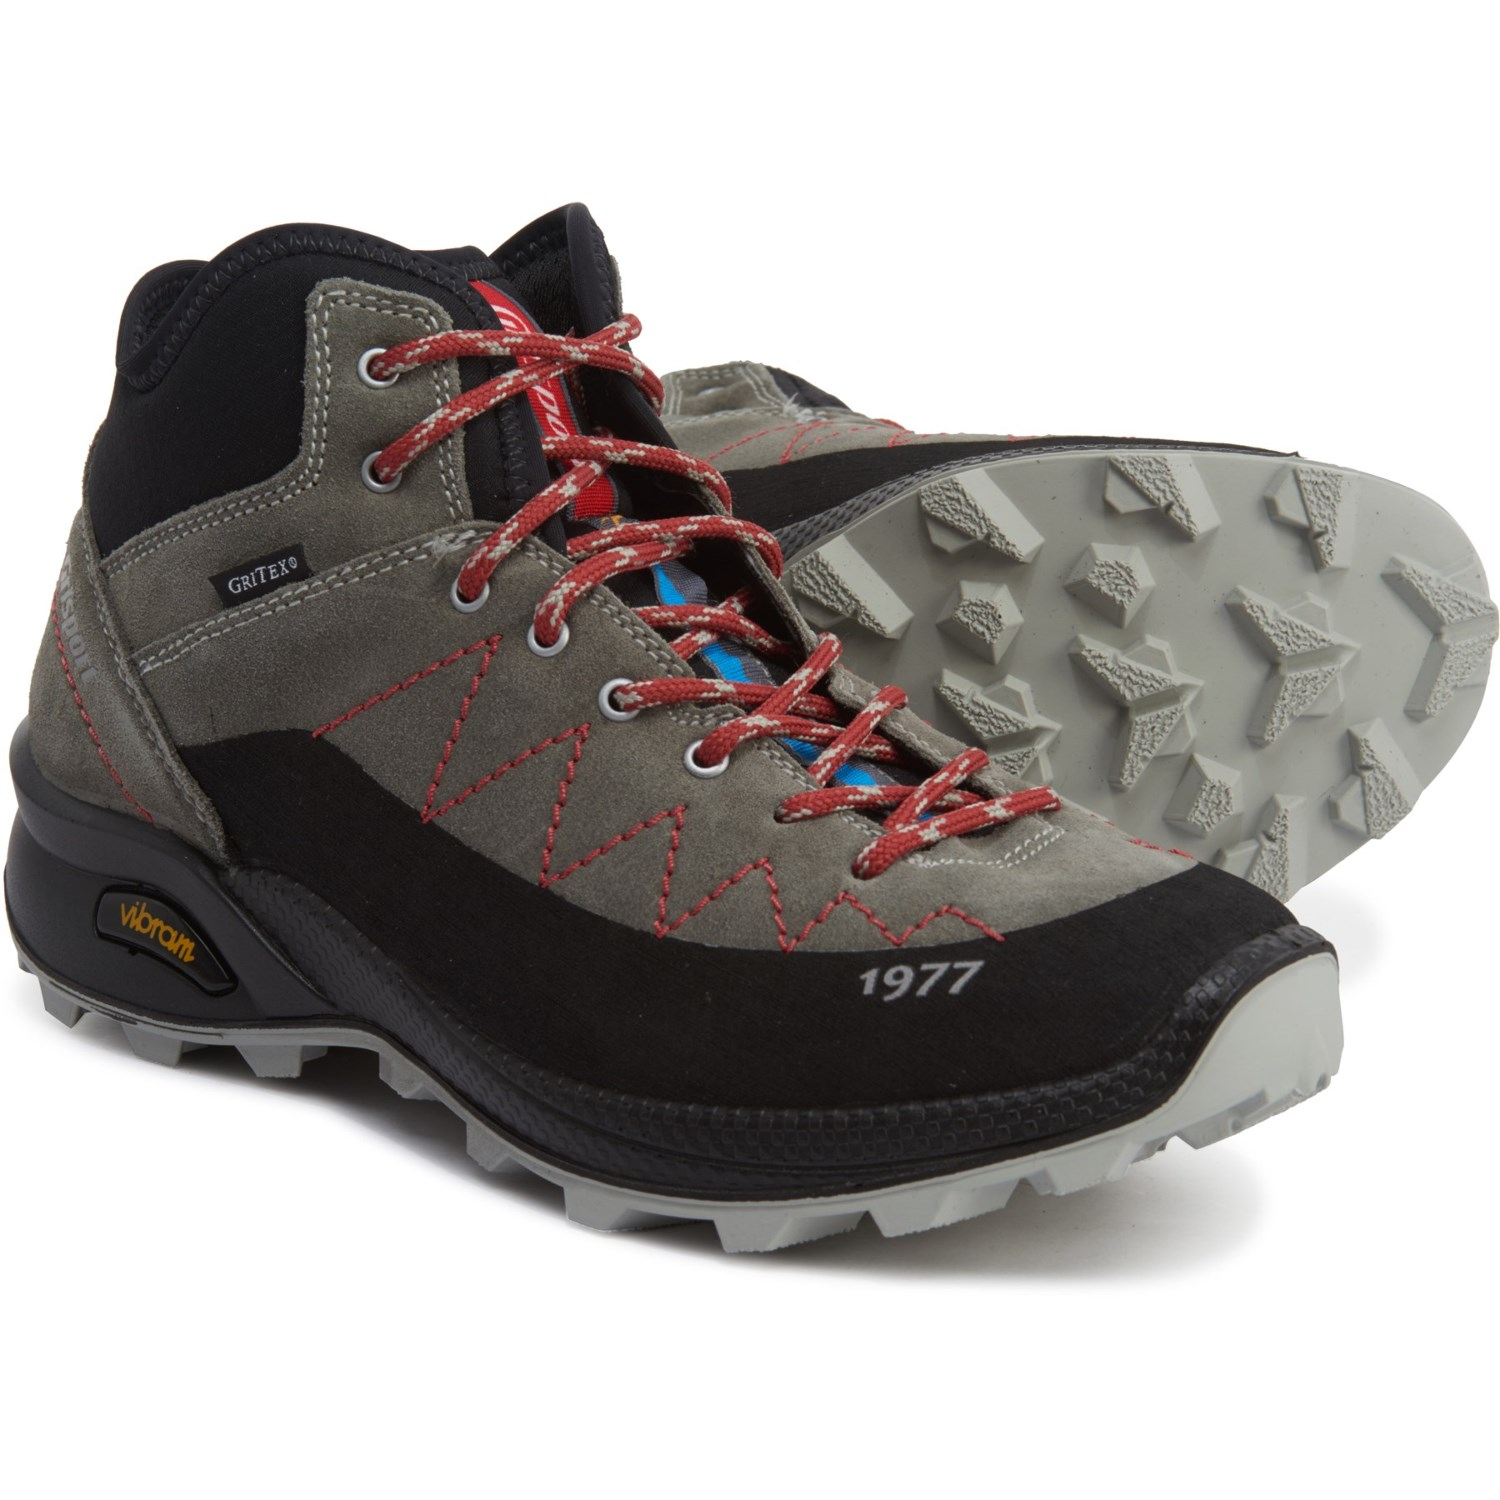 824709817aa Grisport Made in Europe Vesuvio Hiking Boots (For Women) - Save 46%